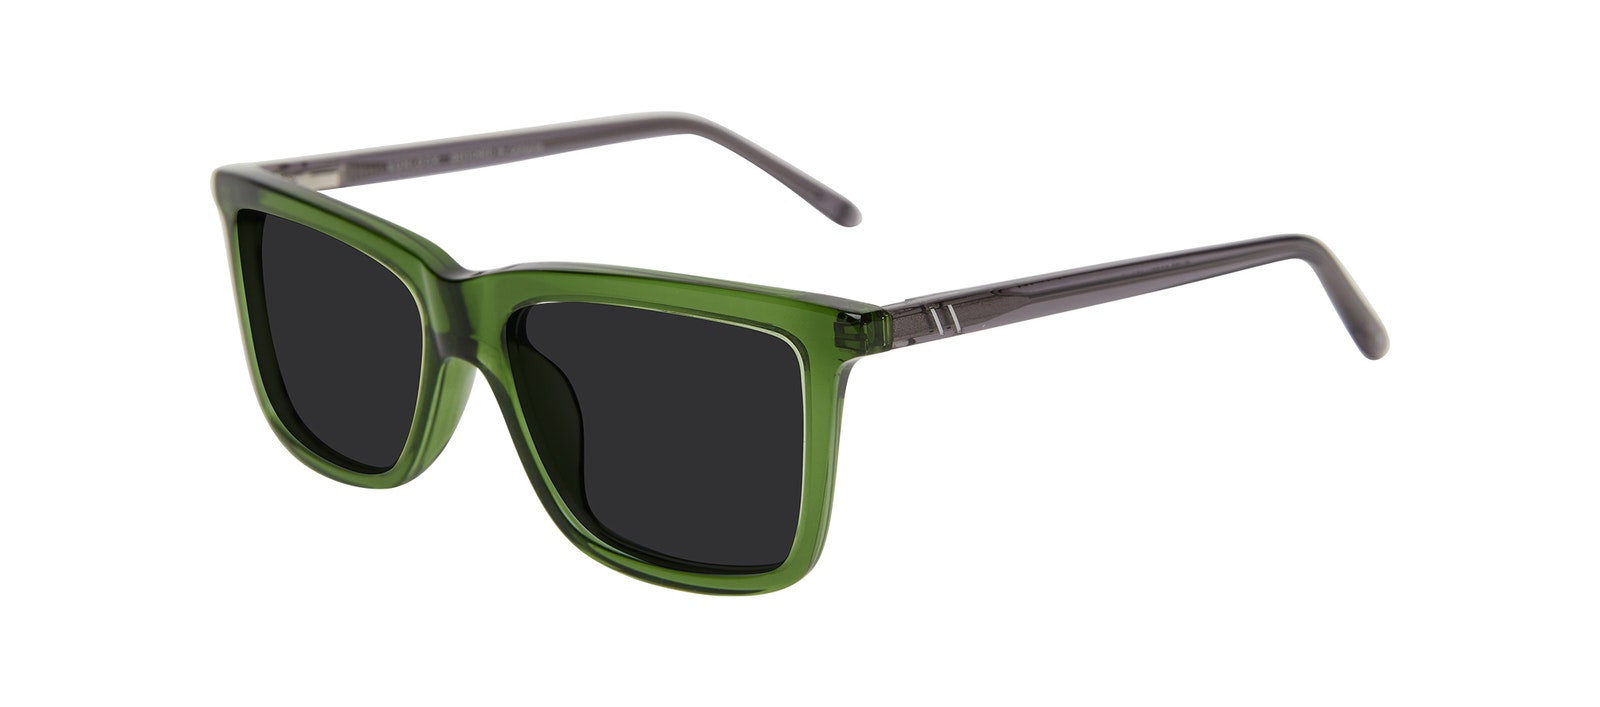 Affordable Fashion Glasses Square Sunglasses Kids Elite Junior Green Stone Tilt